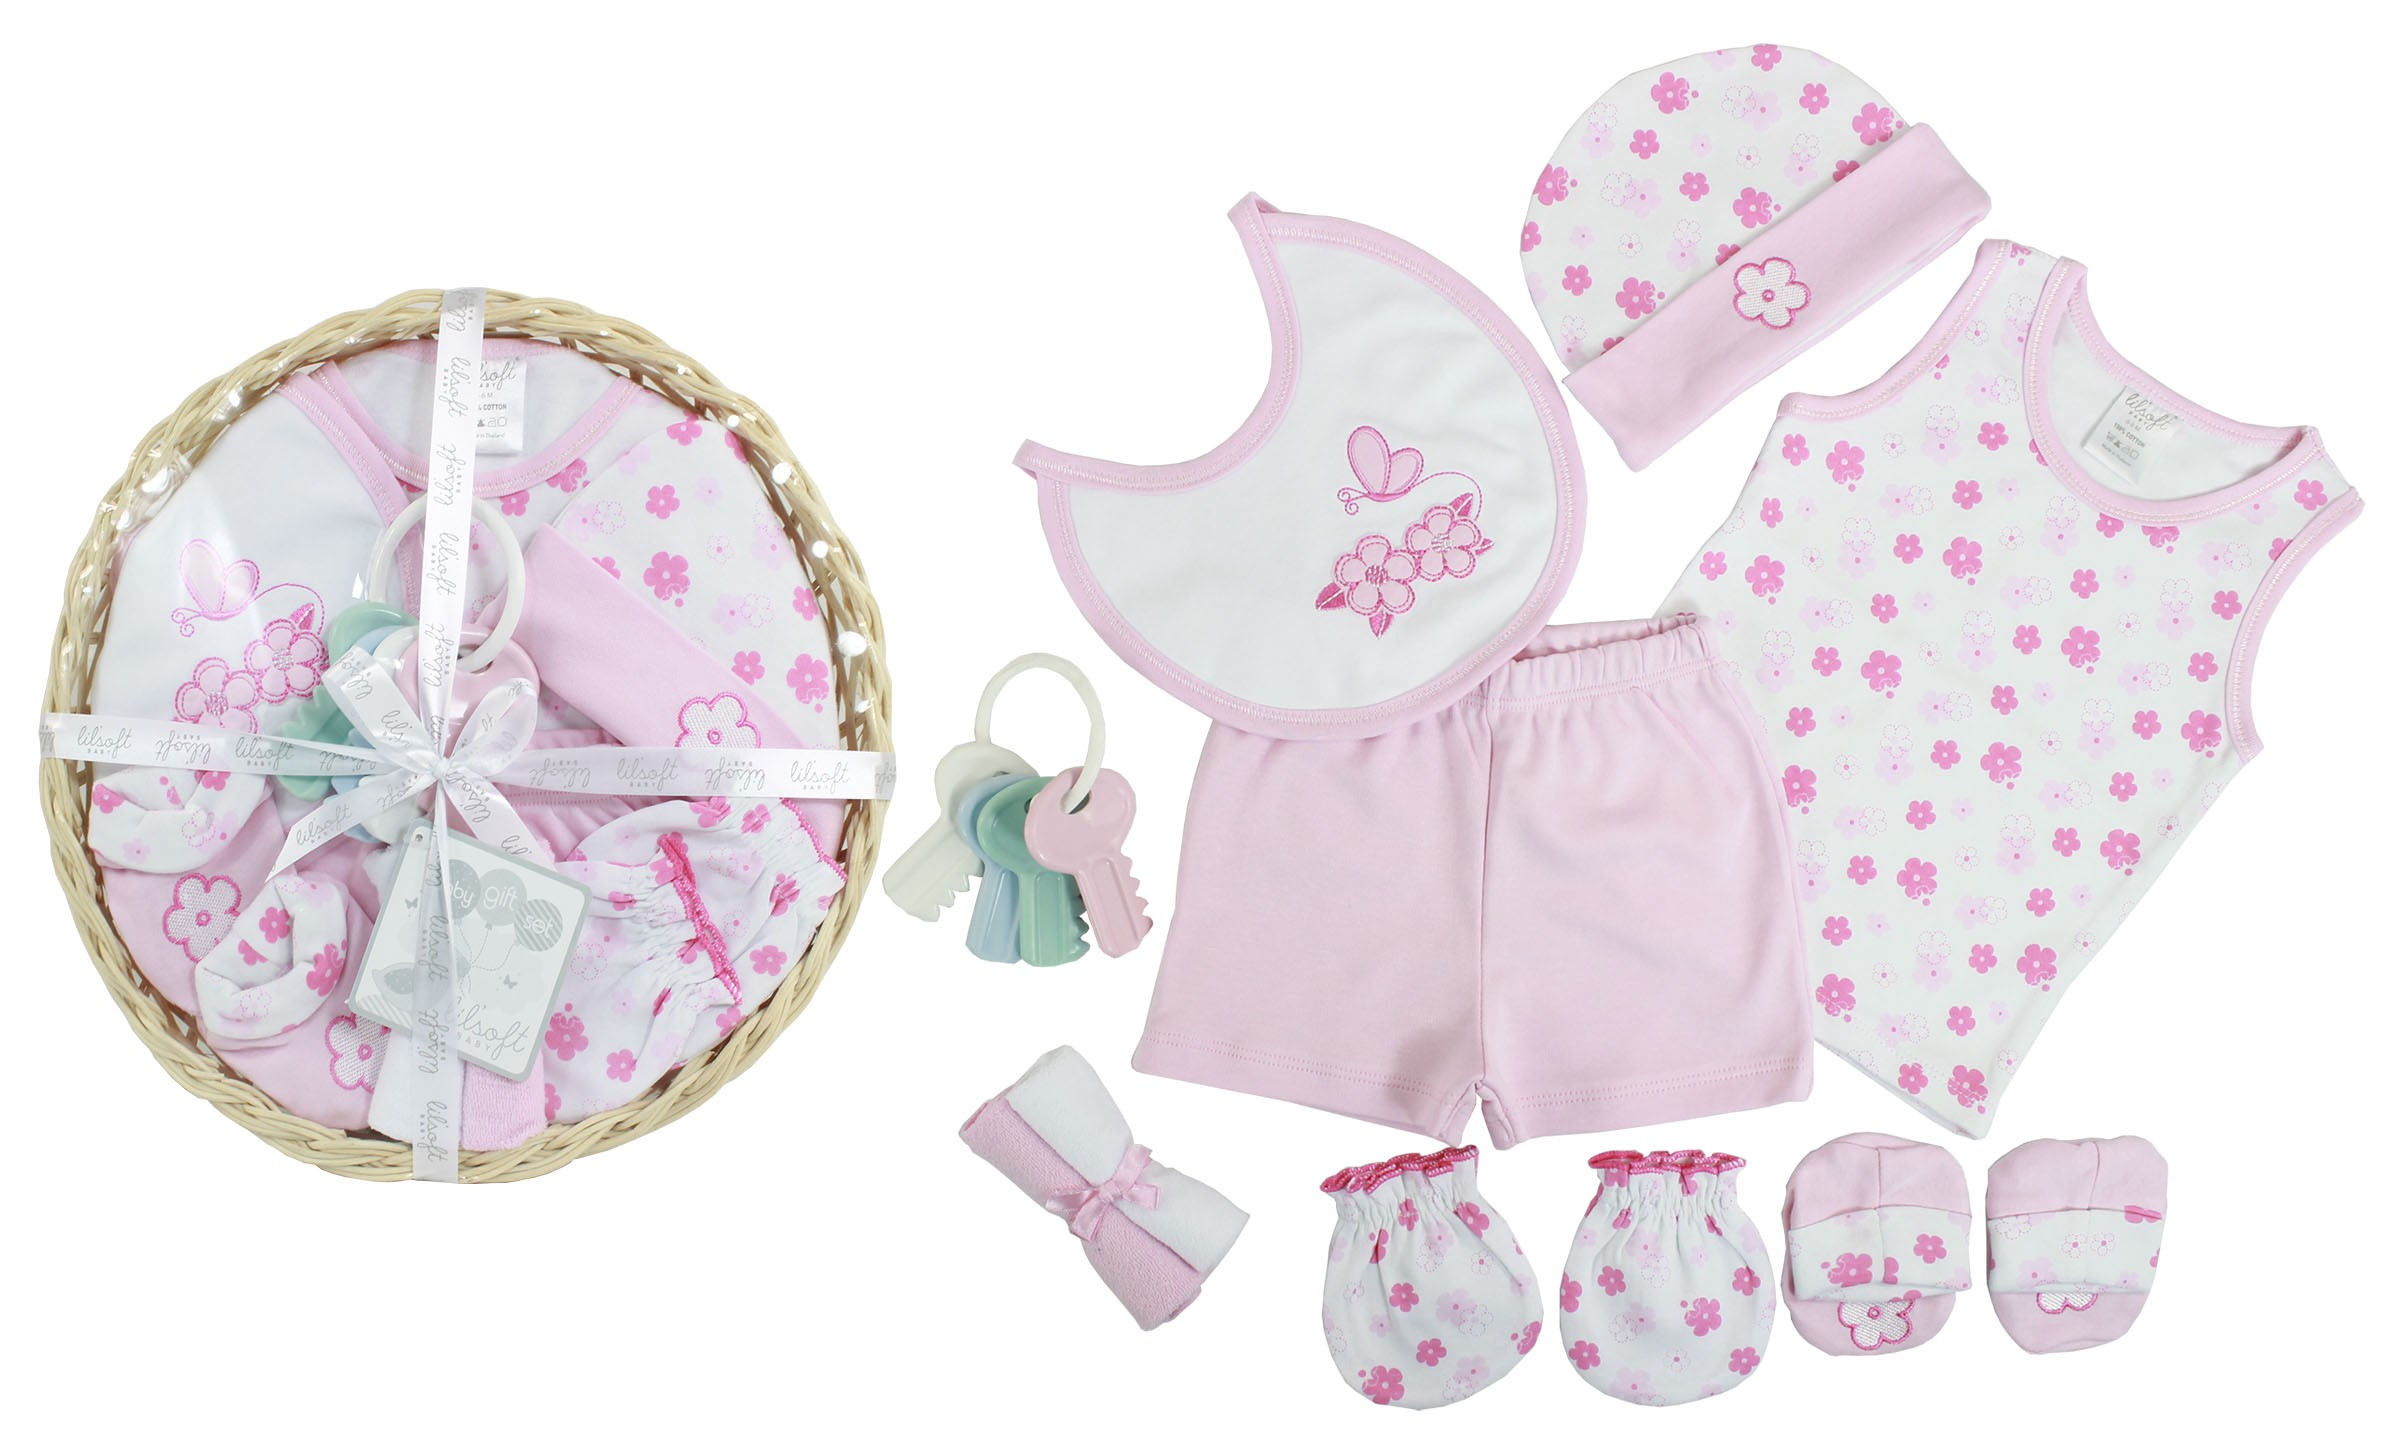 Firstcry Baby Gift Sets : Pcs baby gift set for sets